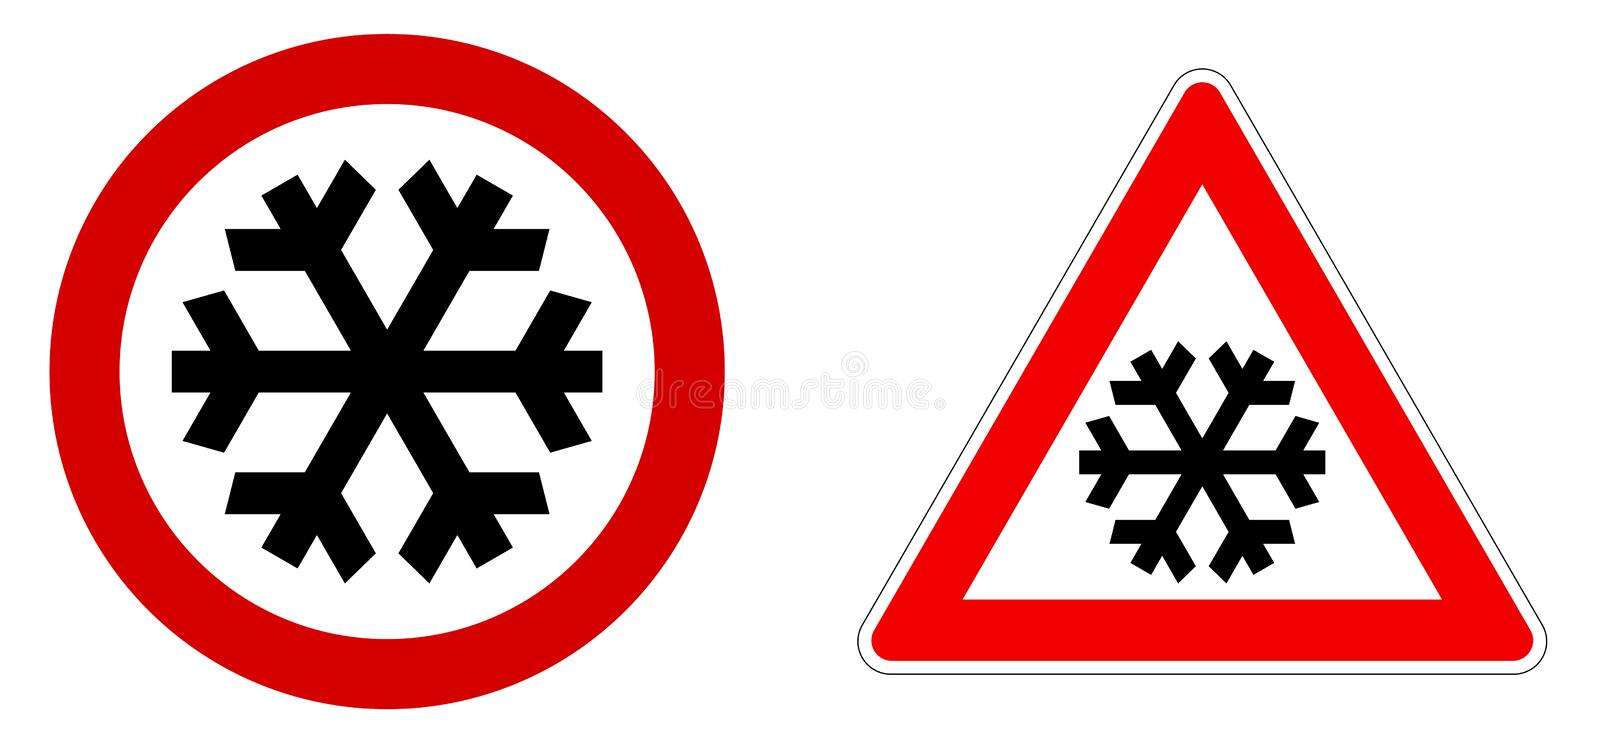 Careful snow / cold / winter sign. Black snowflake in red circle and triangle vector illustration